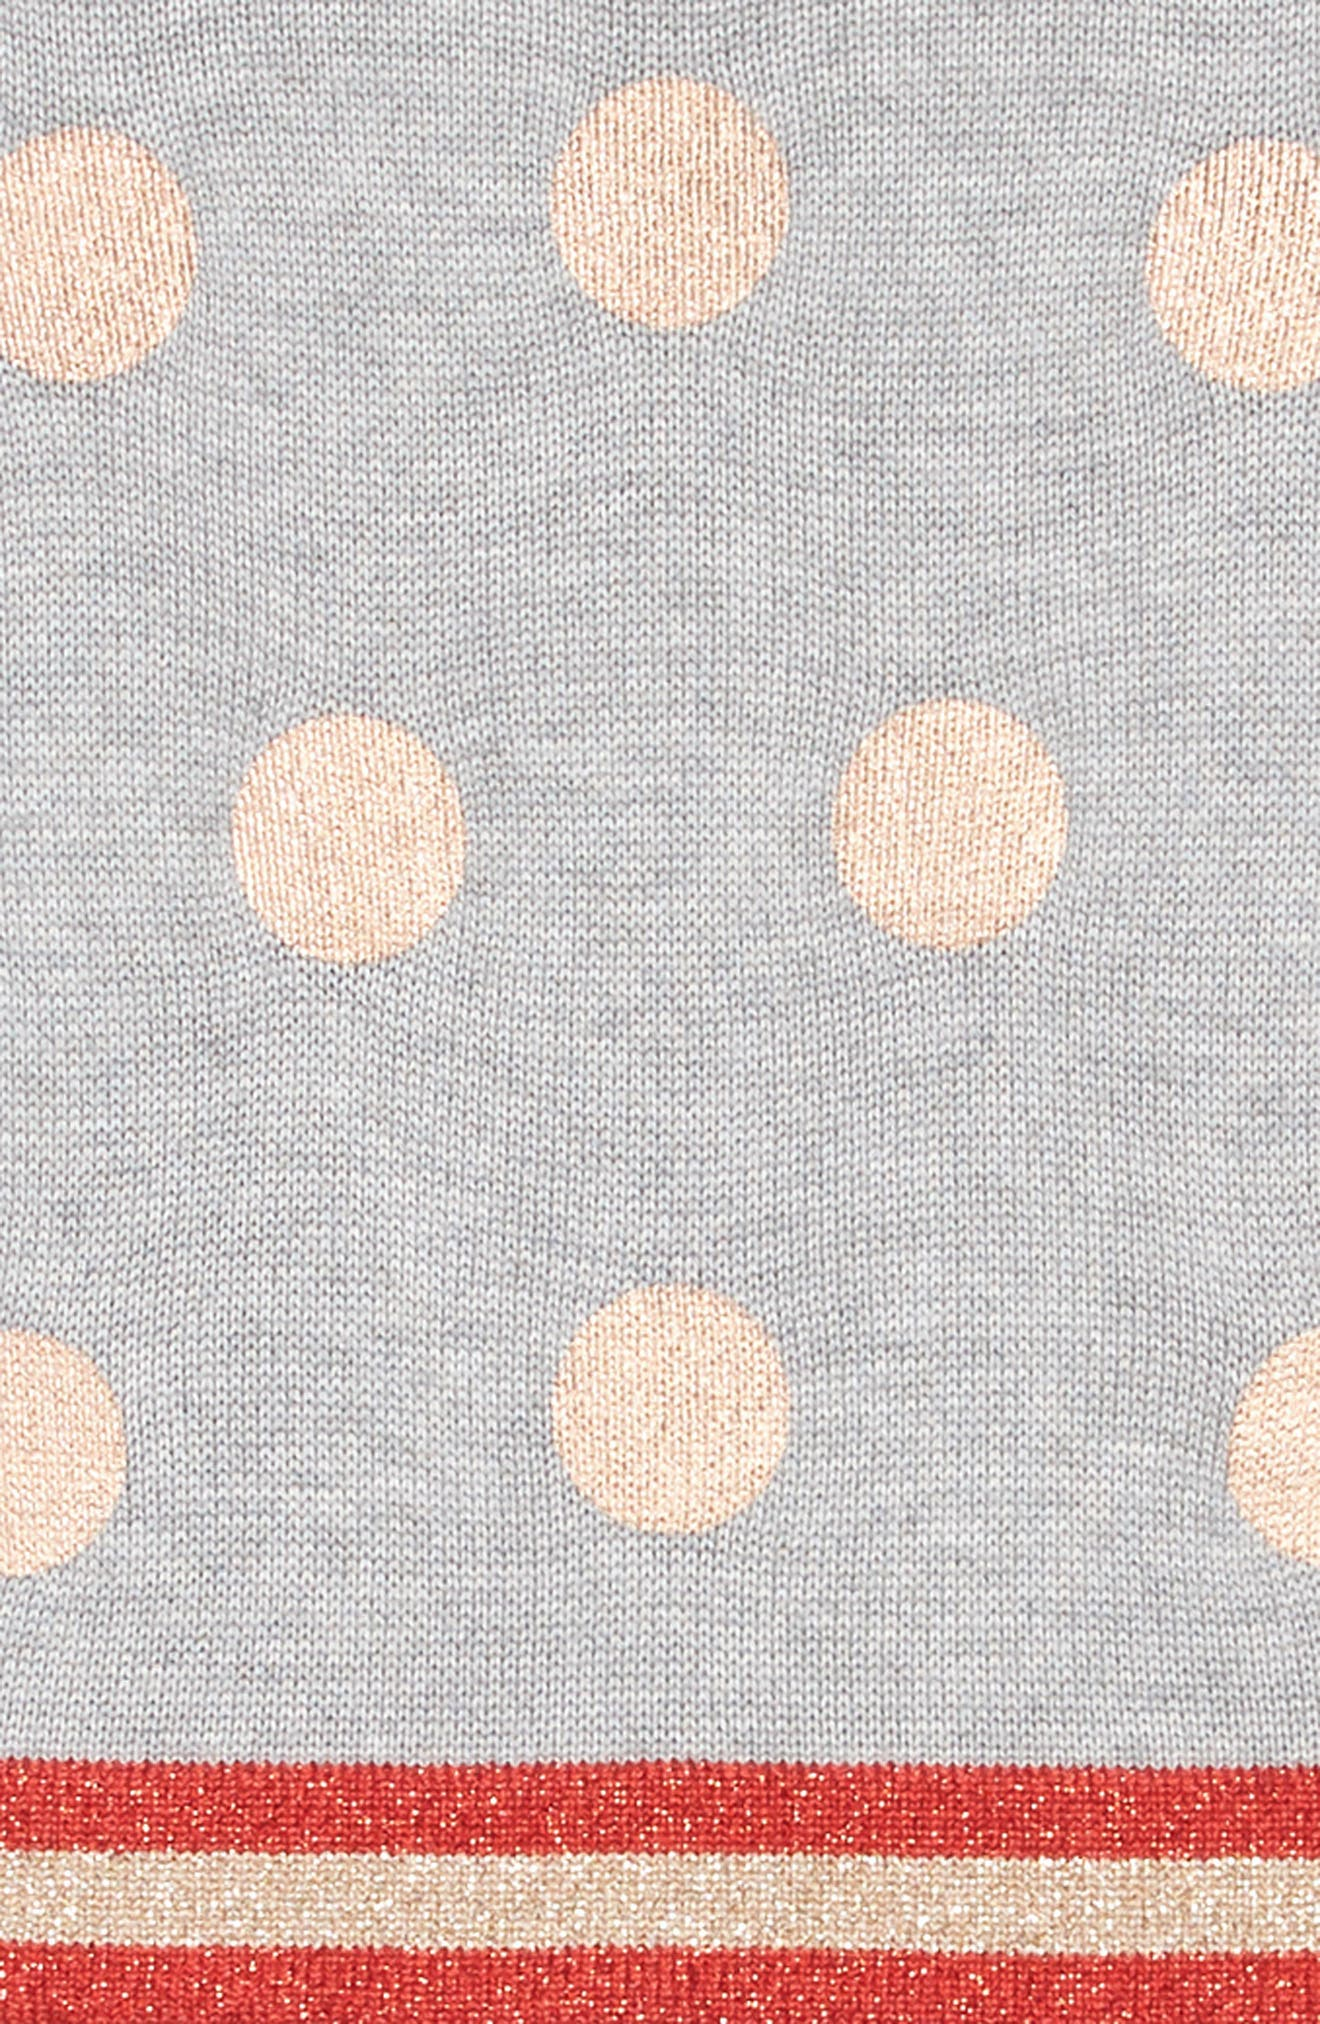 Mini Boden Foil Spot Knit Dress,                             Alternate thumbnail 3, color,                             GRY GREY MARL FOIL SPOTS